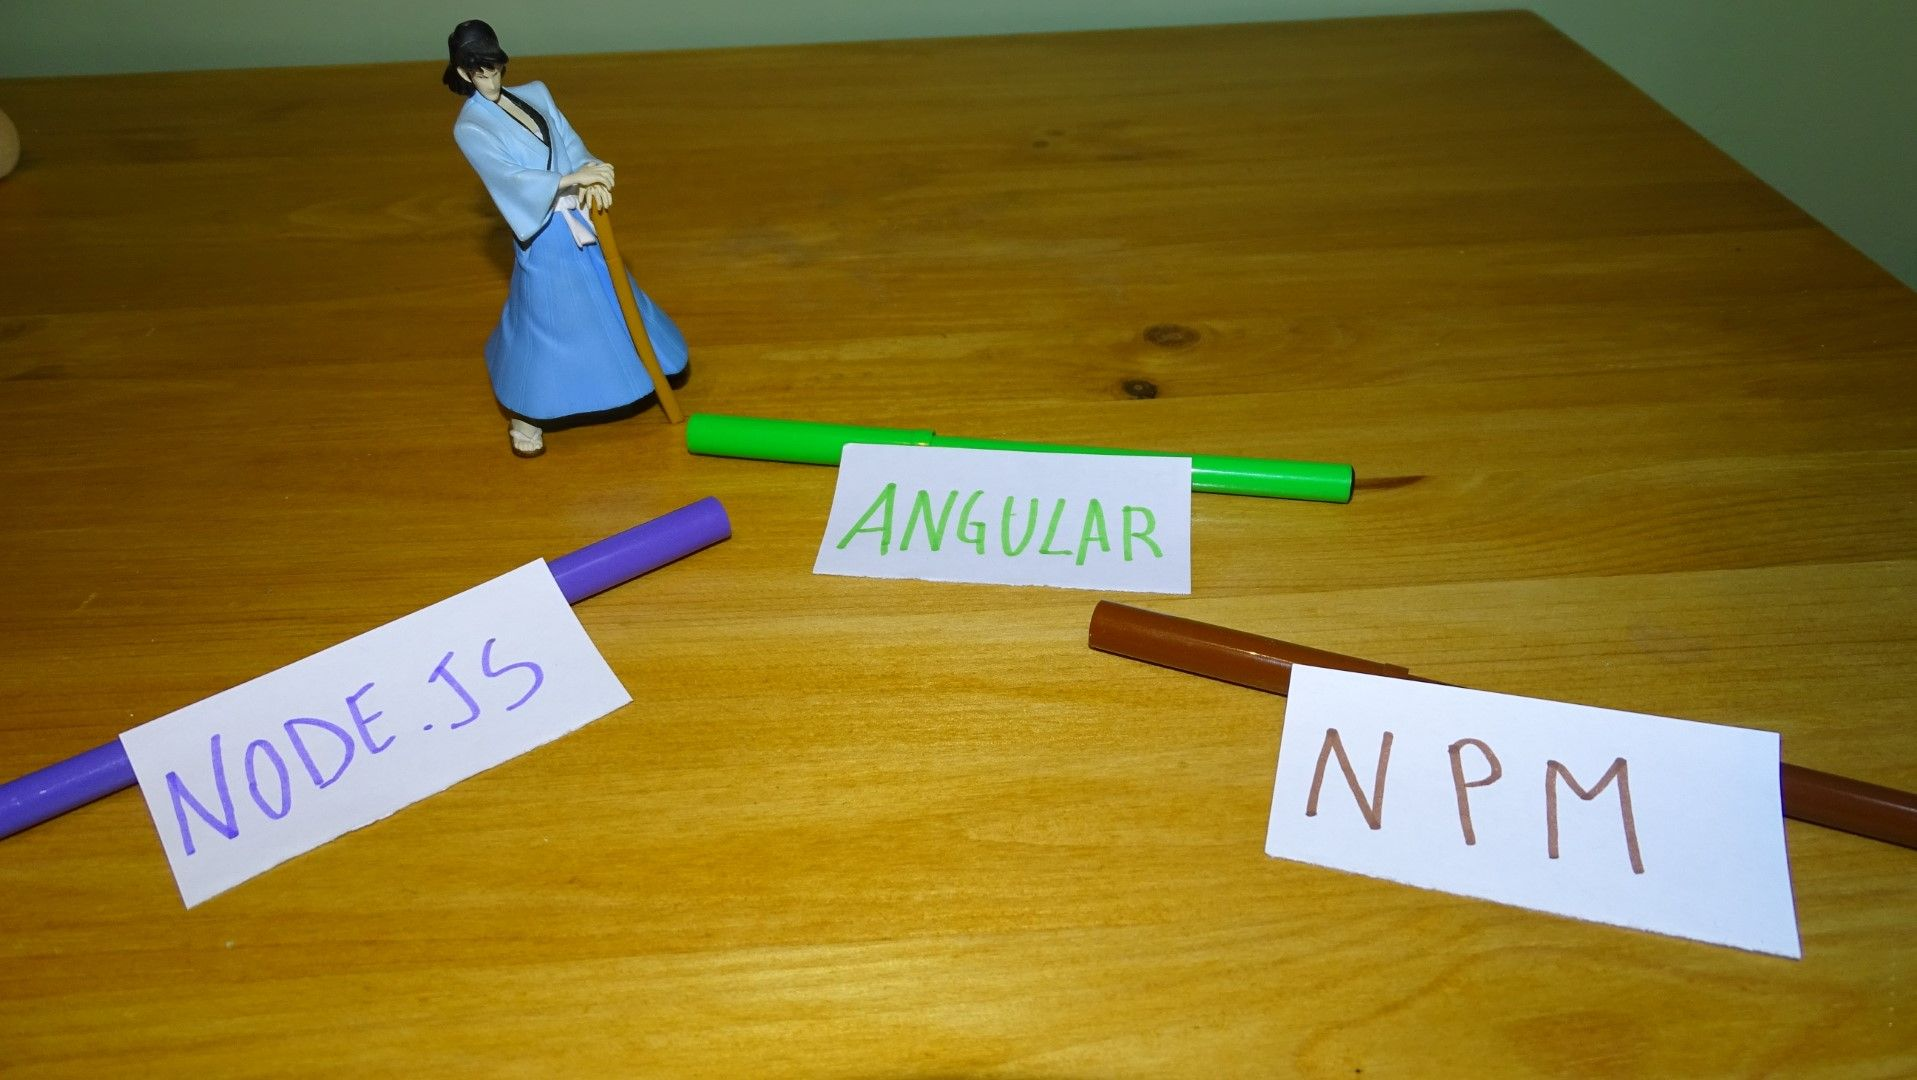 /the-difference-between-angular-npm-and-nodejs-d0203397 feature image